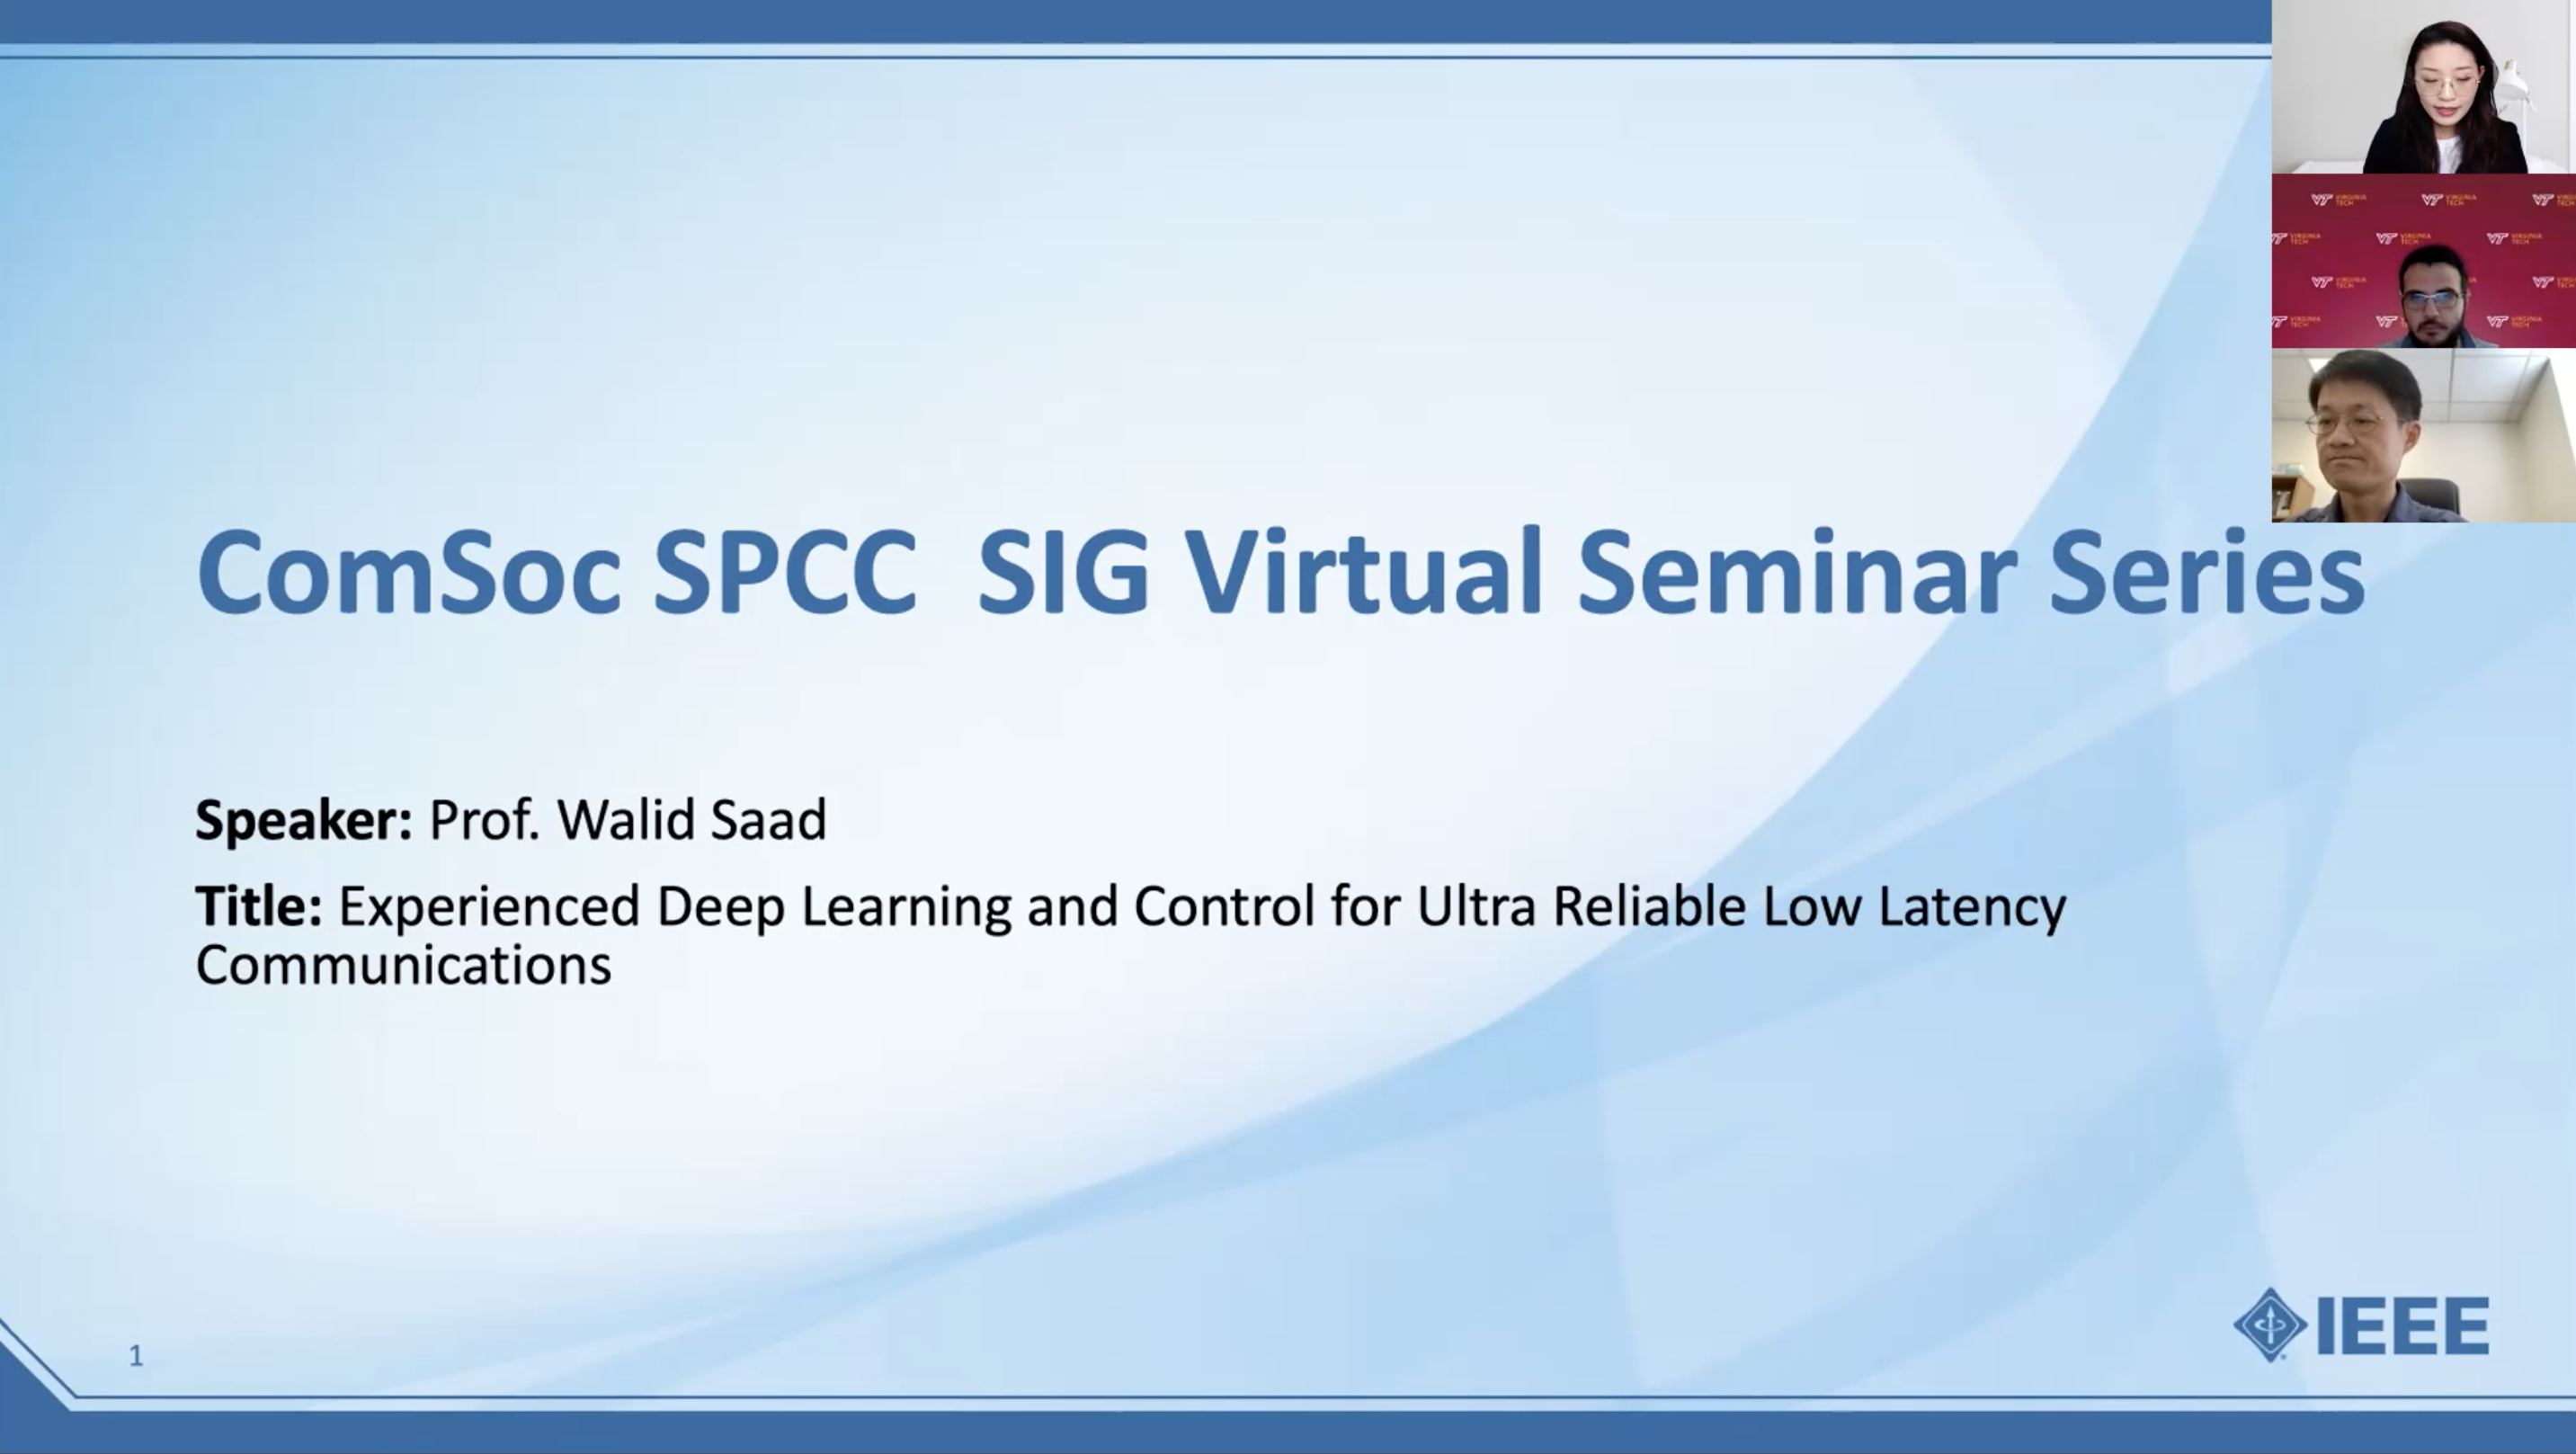 """Talk on """"Experienced Deep Learning & Control of URLL Communications"""""""